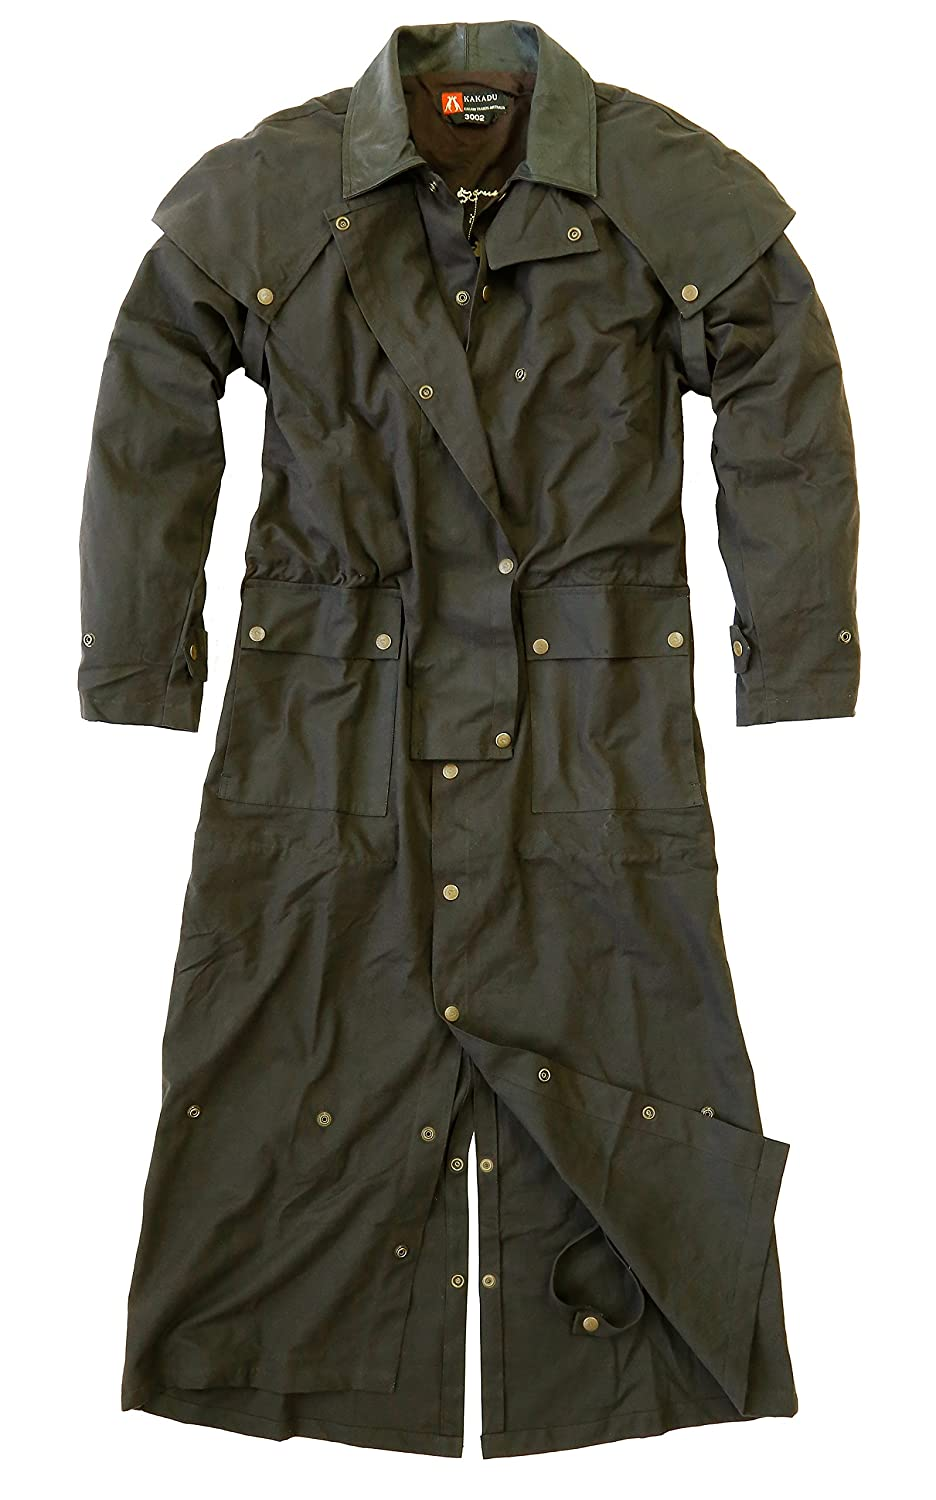 Kakadu Traders Long Rider 3-IN-1 Original Oilskin Wachsmantel